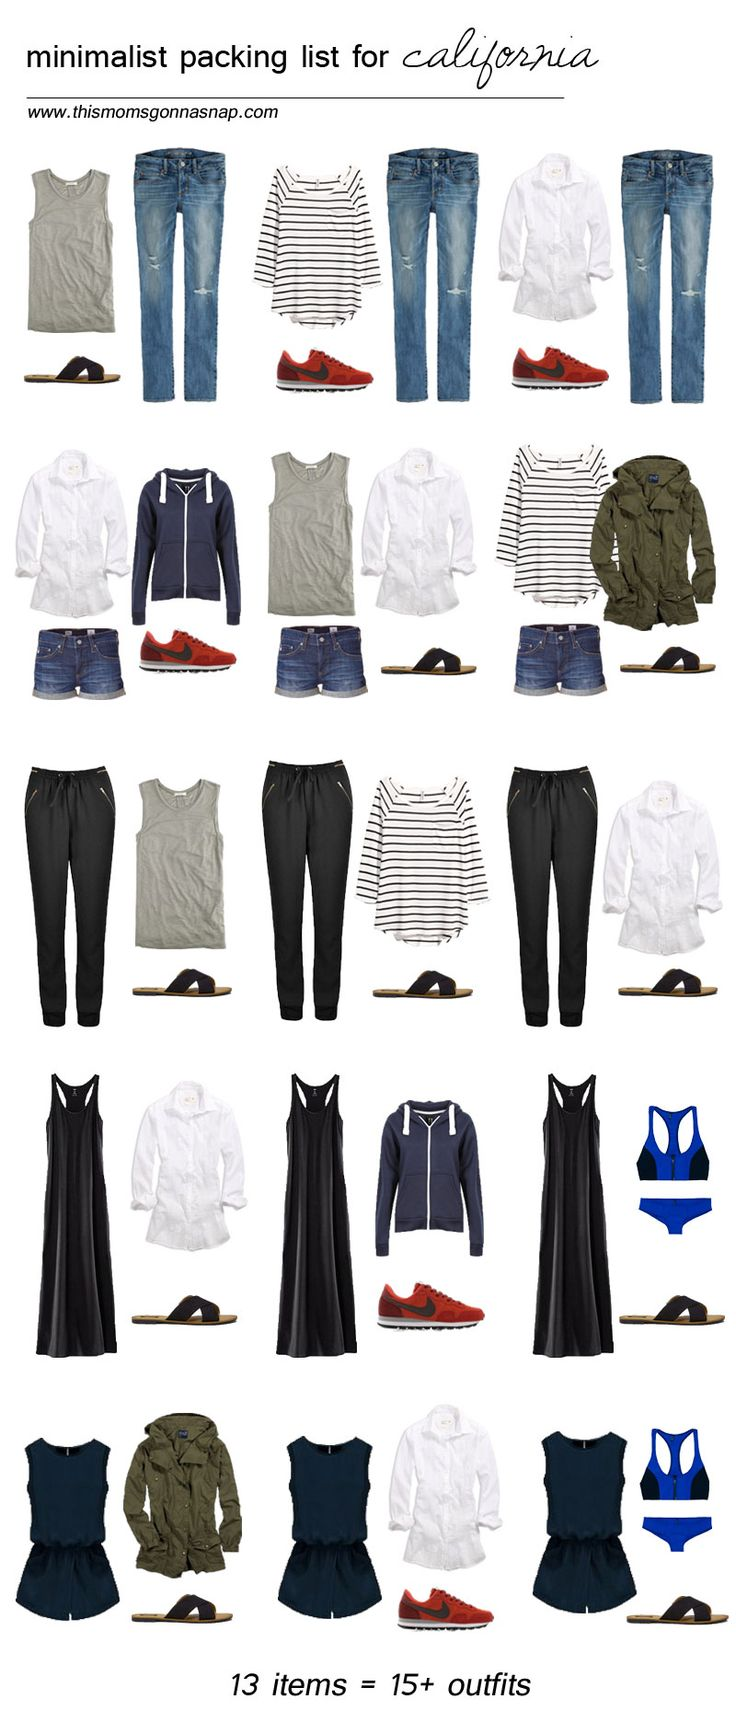 mom style, packing list, minimalist wardrobe, packing light, california trip, california vacation, packing list for california